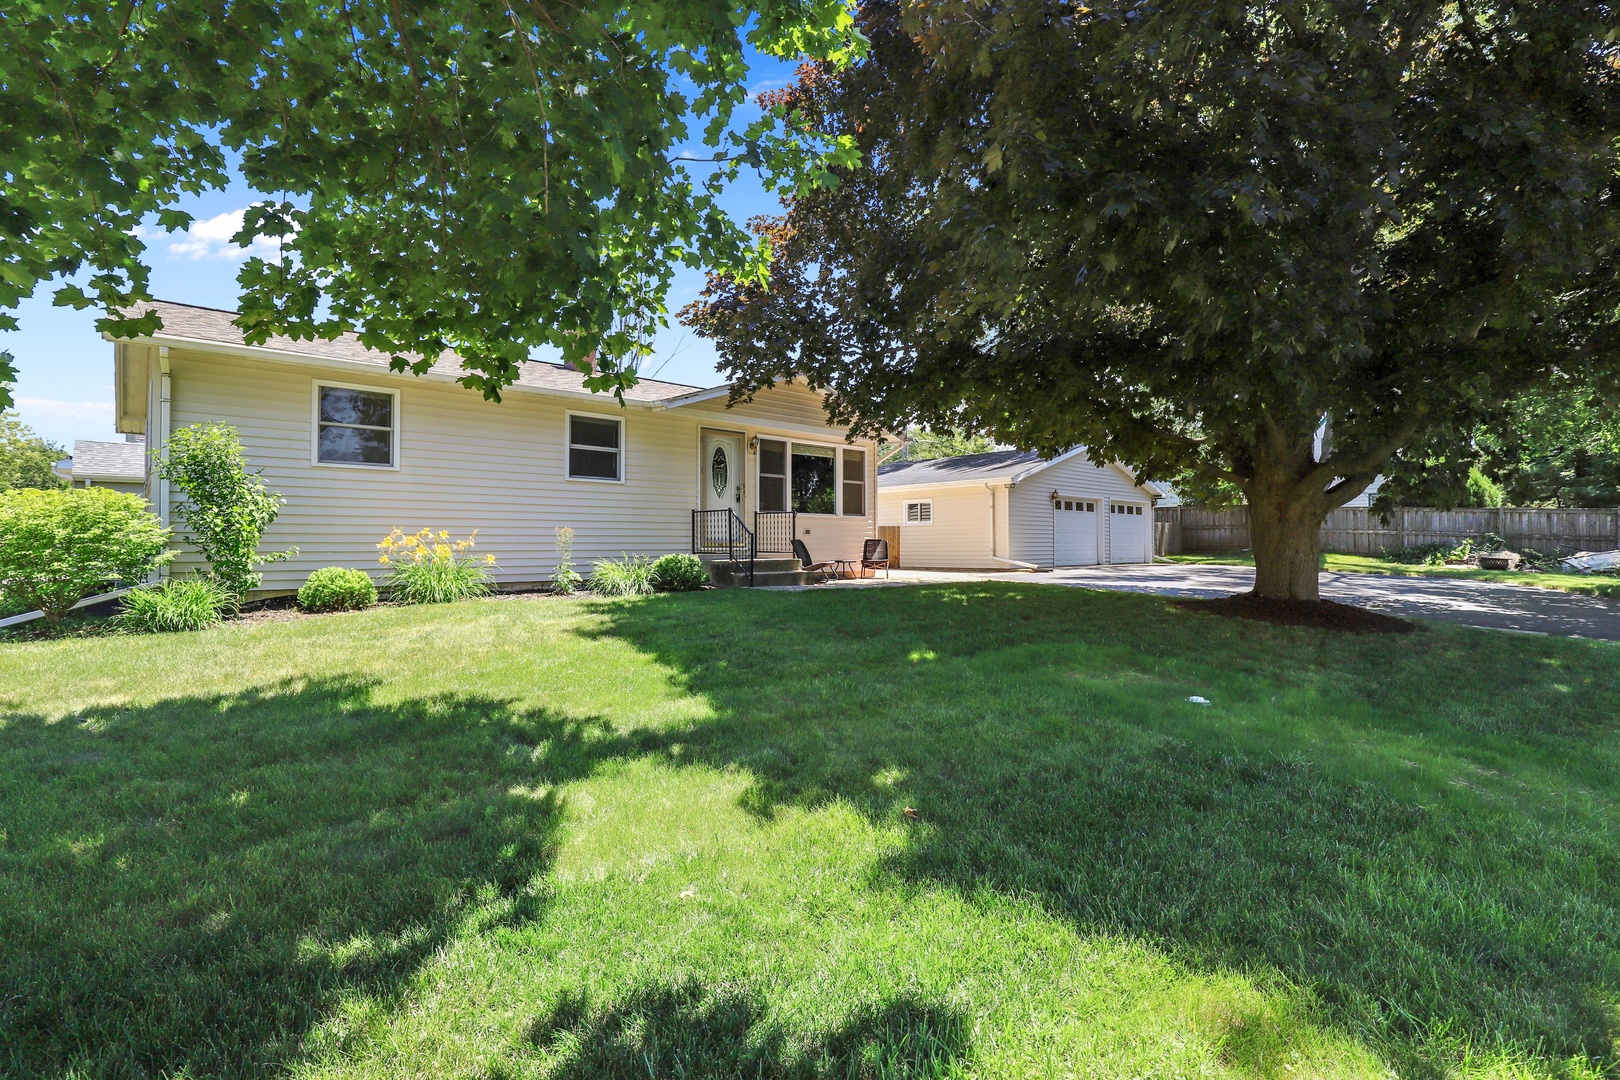 18609 West Old Plank Road, Grayslake, Illinois 60030